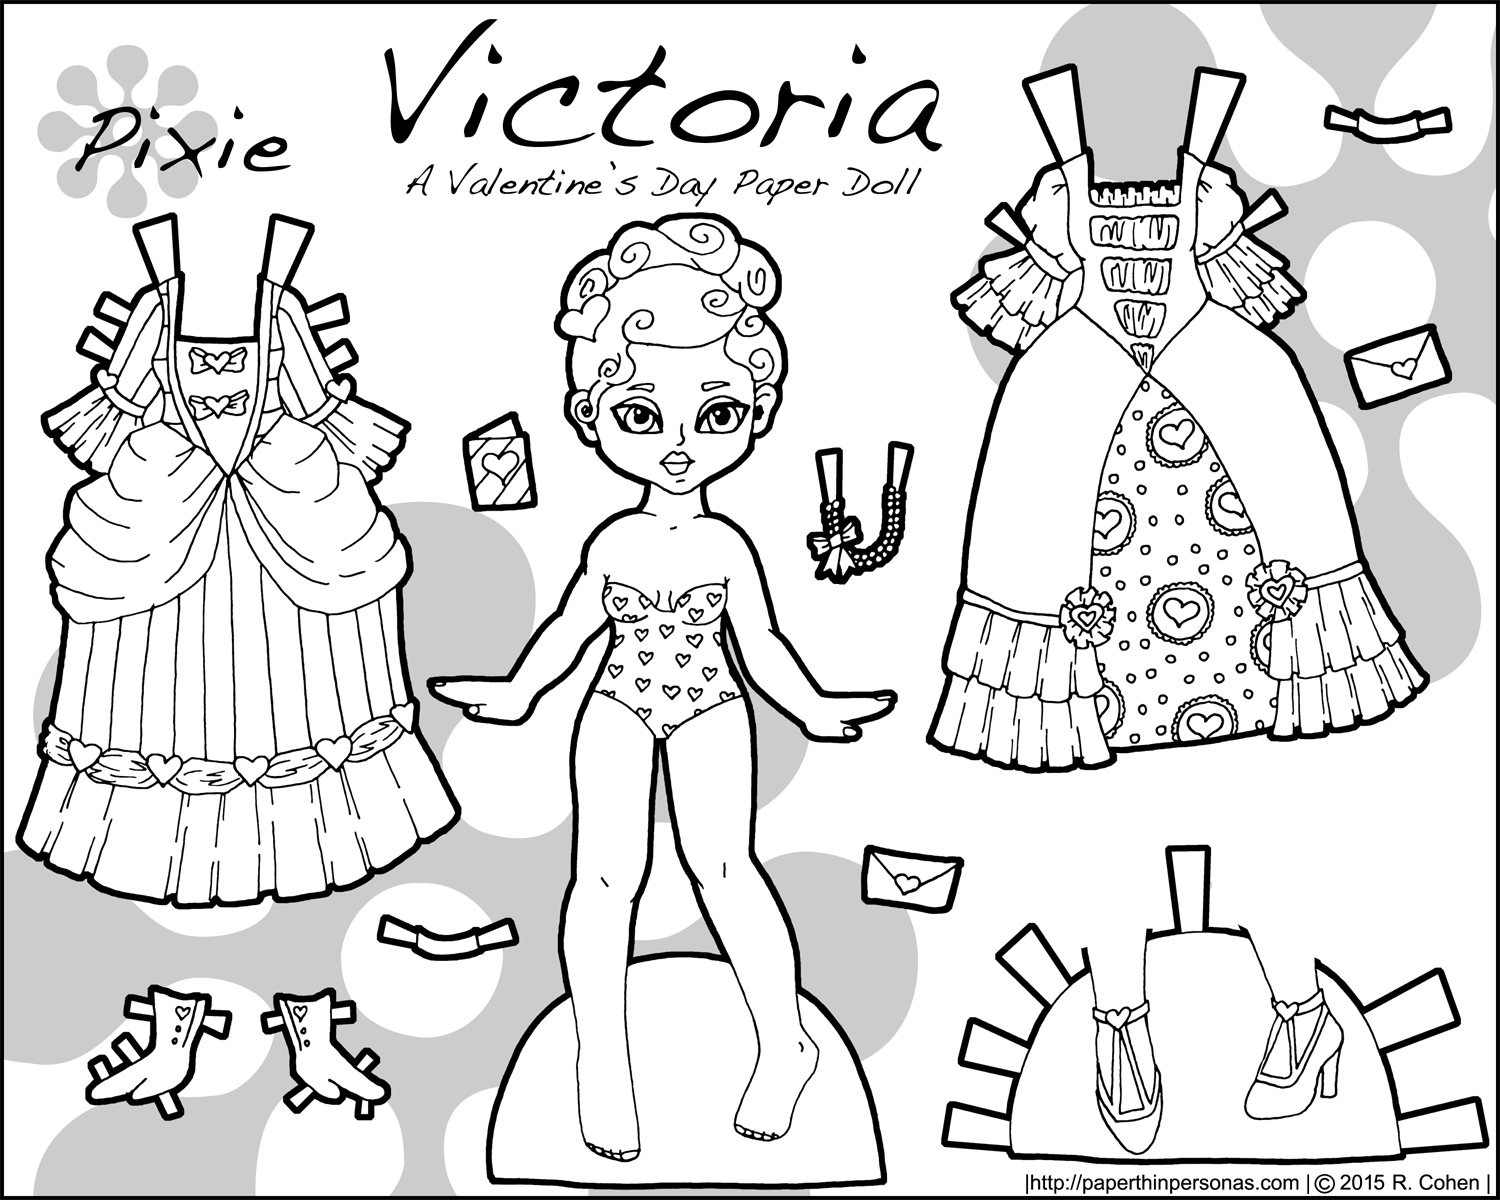 Victoria coloring dresses victorian clothes colouring pages page 2 - A Black And White Valentine S Day Paper Doll Named Victoria And Inspired By Victorian Valentines